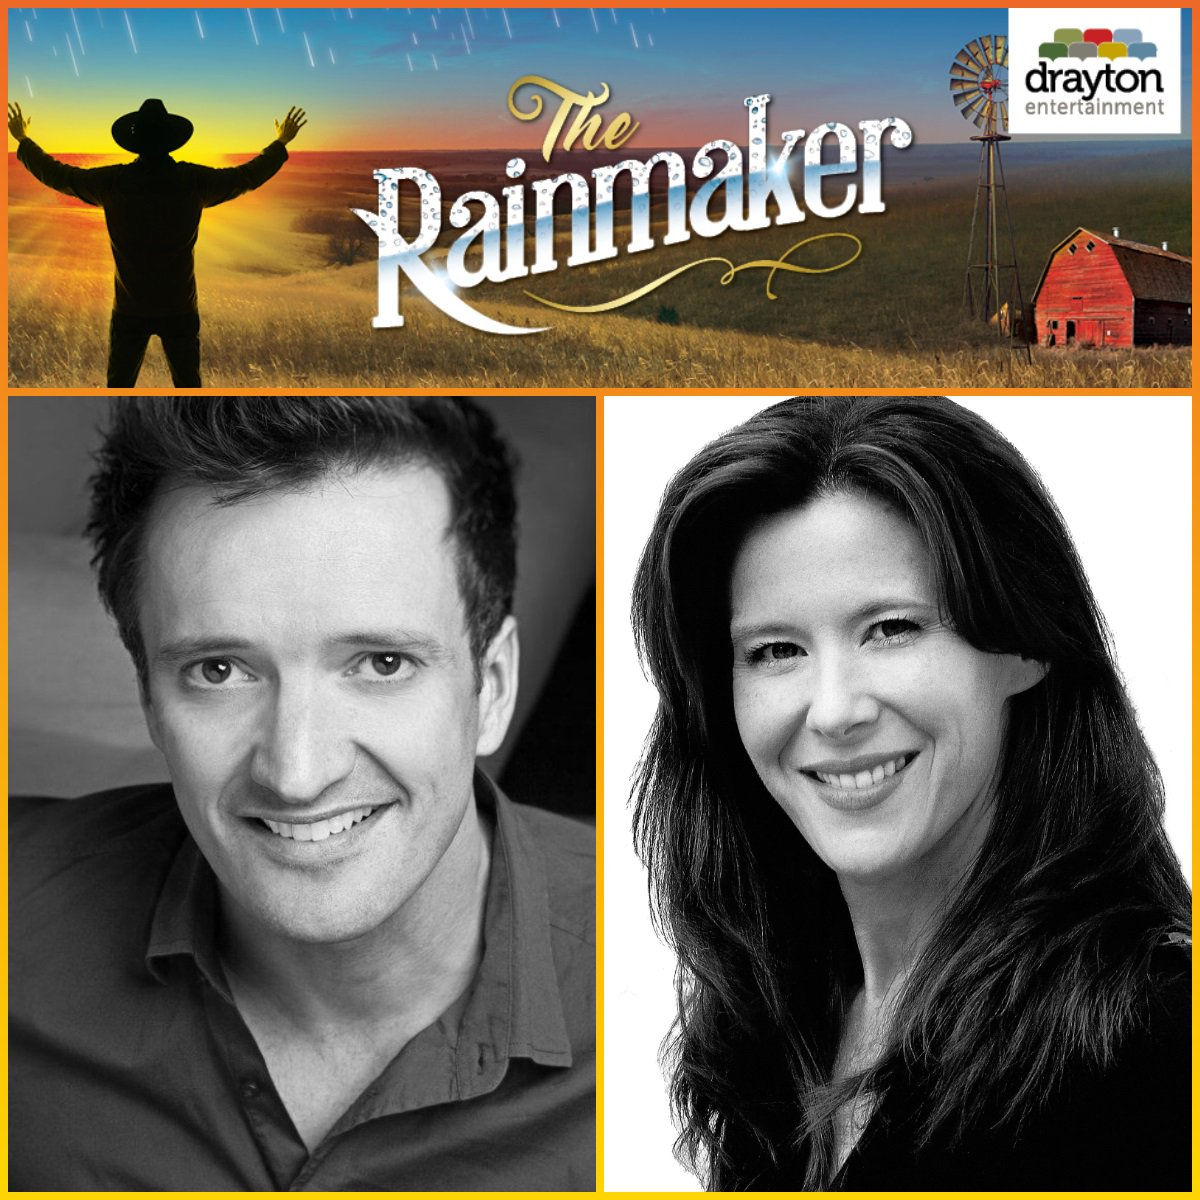 Casting News! @pquilly and Jackie Mustakas have joined the cast of The Rainmaker.  Paul will play Bill Starbuck and Jackie plays Lizzie Curry.  Don't miss this romantic comedy on stage at #StJacobsCountryPlayhouse June 20 - July 7  https://www. draytonentertainment.com/rainmaker-stja cobs  … <br>http://pic.twitter.com/hX9Zs3XO1j